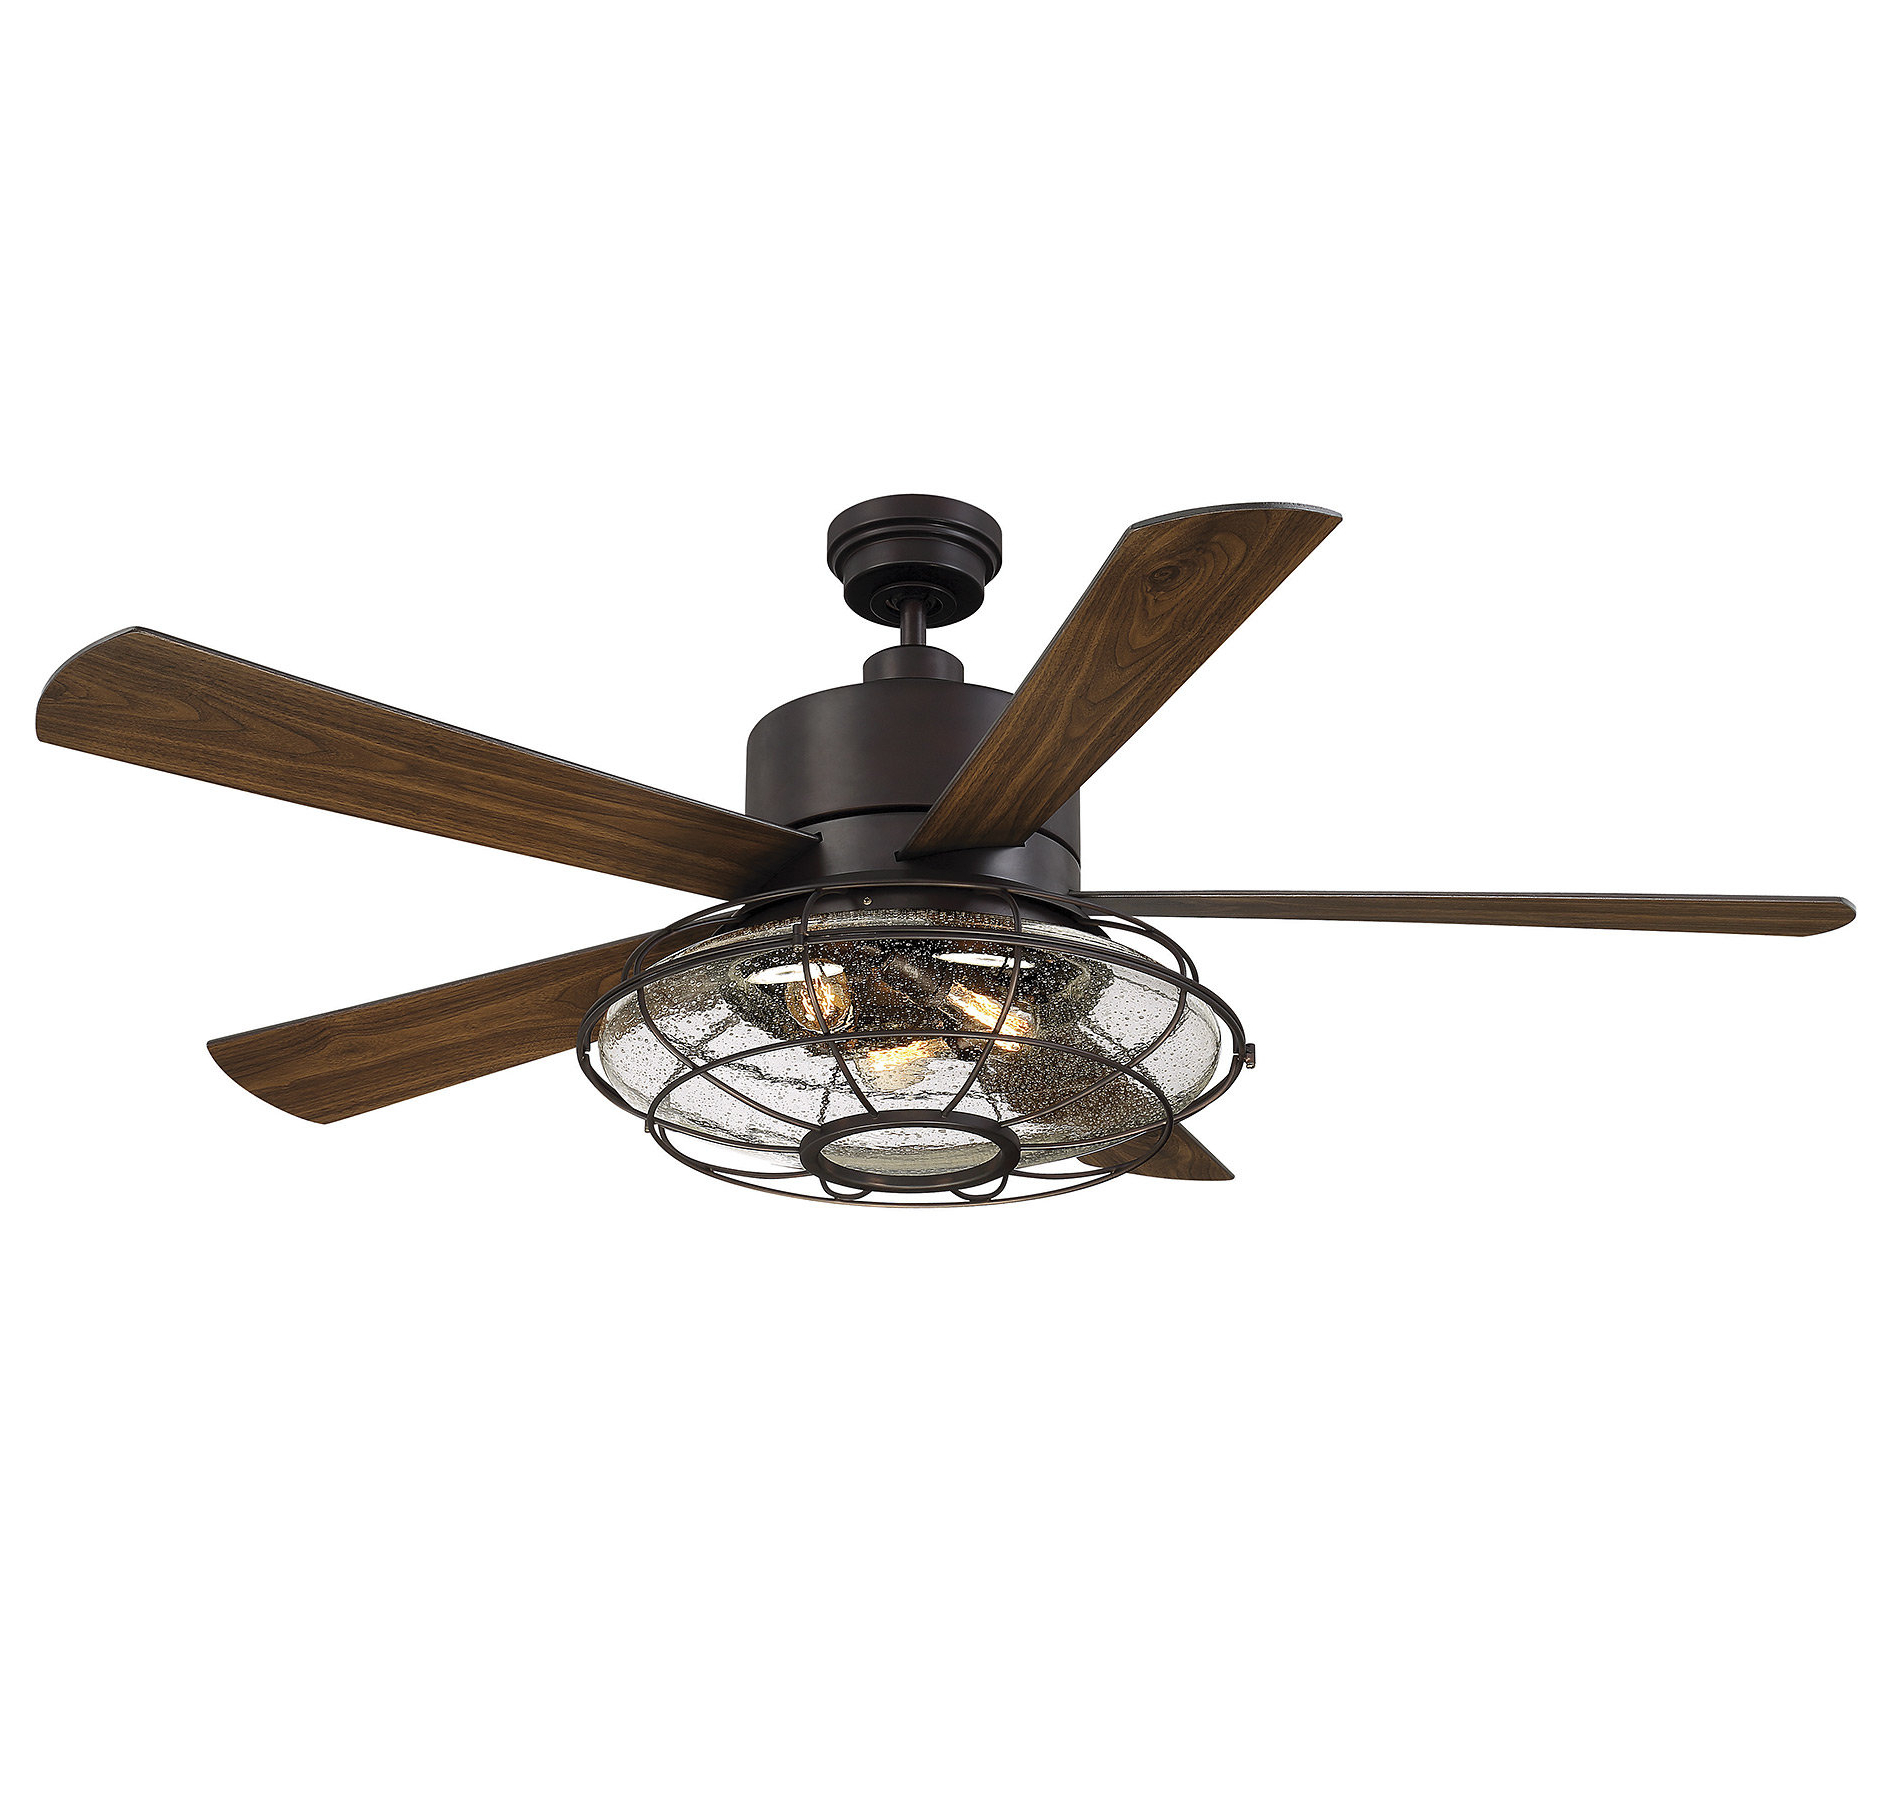 """5 Blade Ceiling Fans With Remote In Most Recently Released 56"""" Roberts 5 Blade Ceiling Fan With Remote Control, Light Kit Included (View 3 of 20)"""